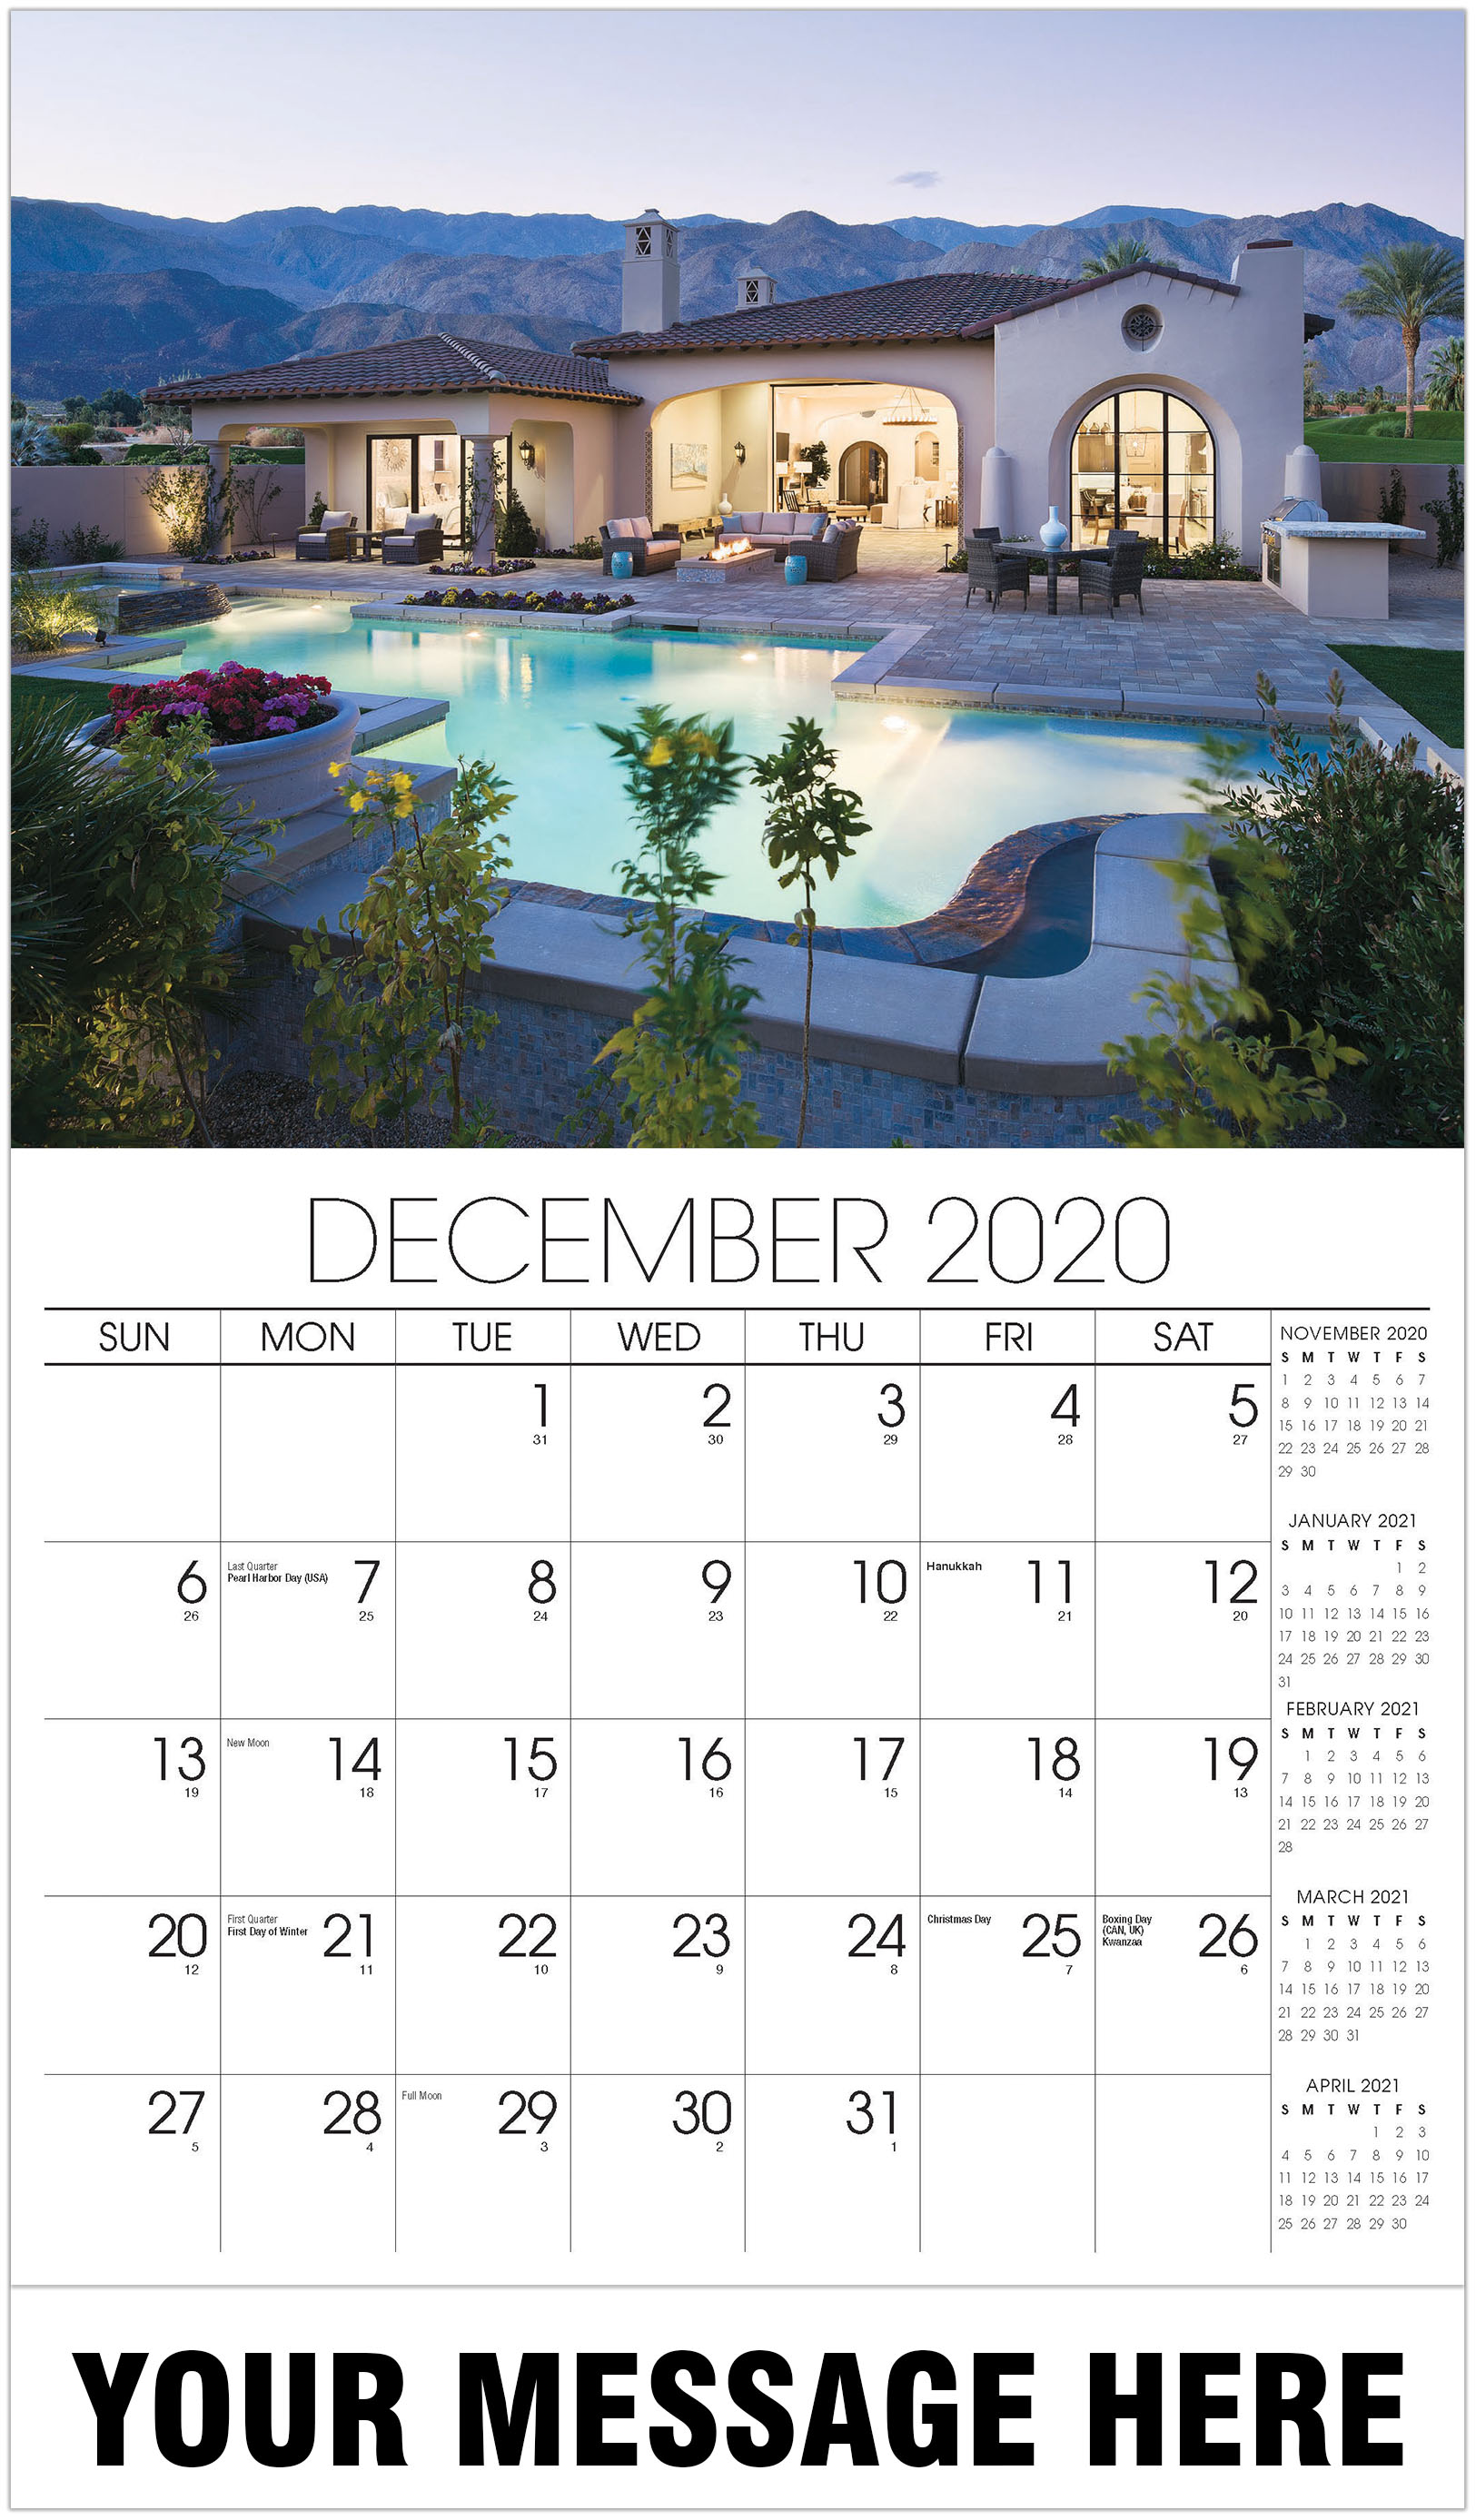 Luxury Homes Calendar - December 2020 - Homes 2021 Promotional Calendar